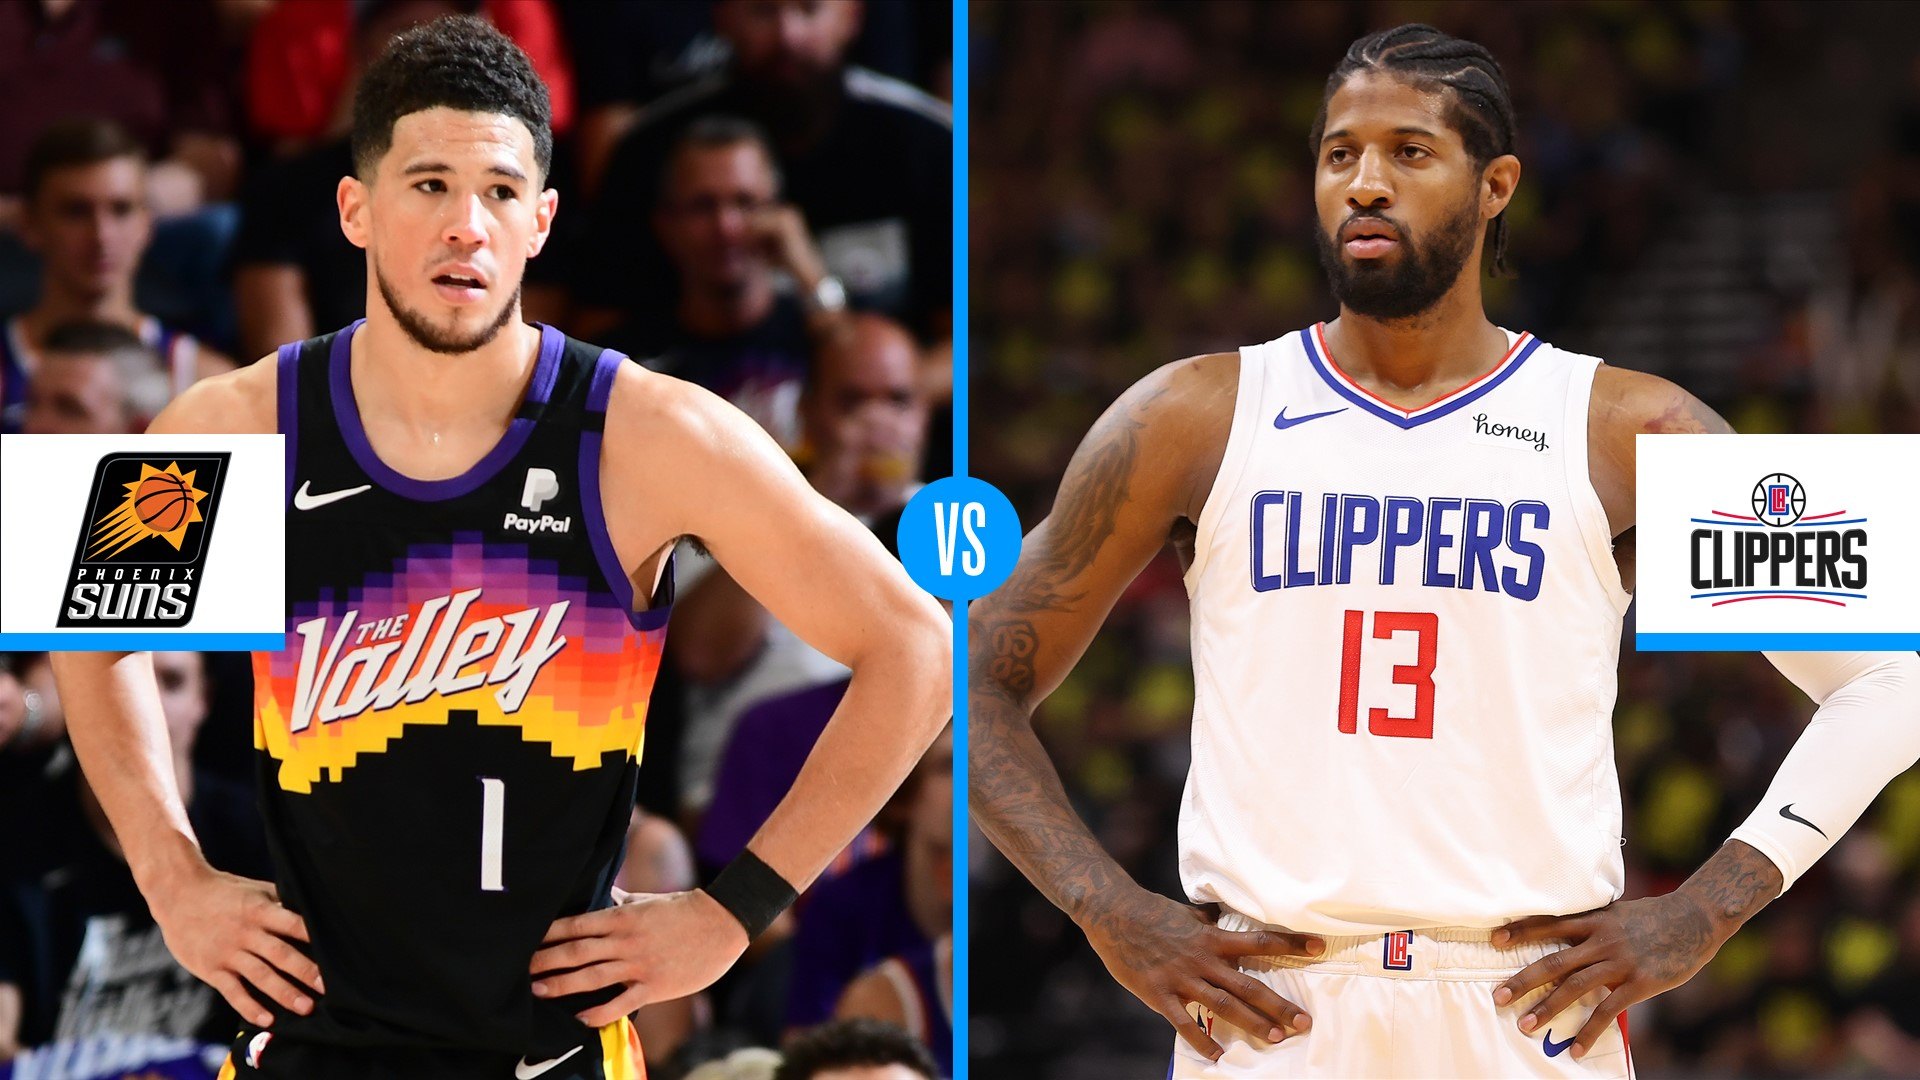 NBA Playoffs 2021: Phoenix Suns vs. LA Clippers series preview | NBA.com India | The official site of the NBA